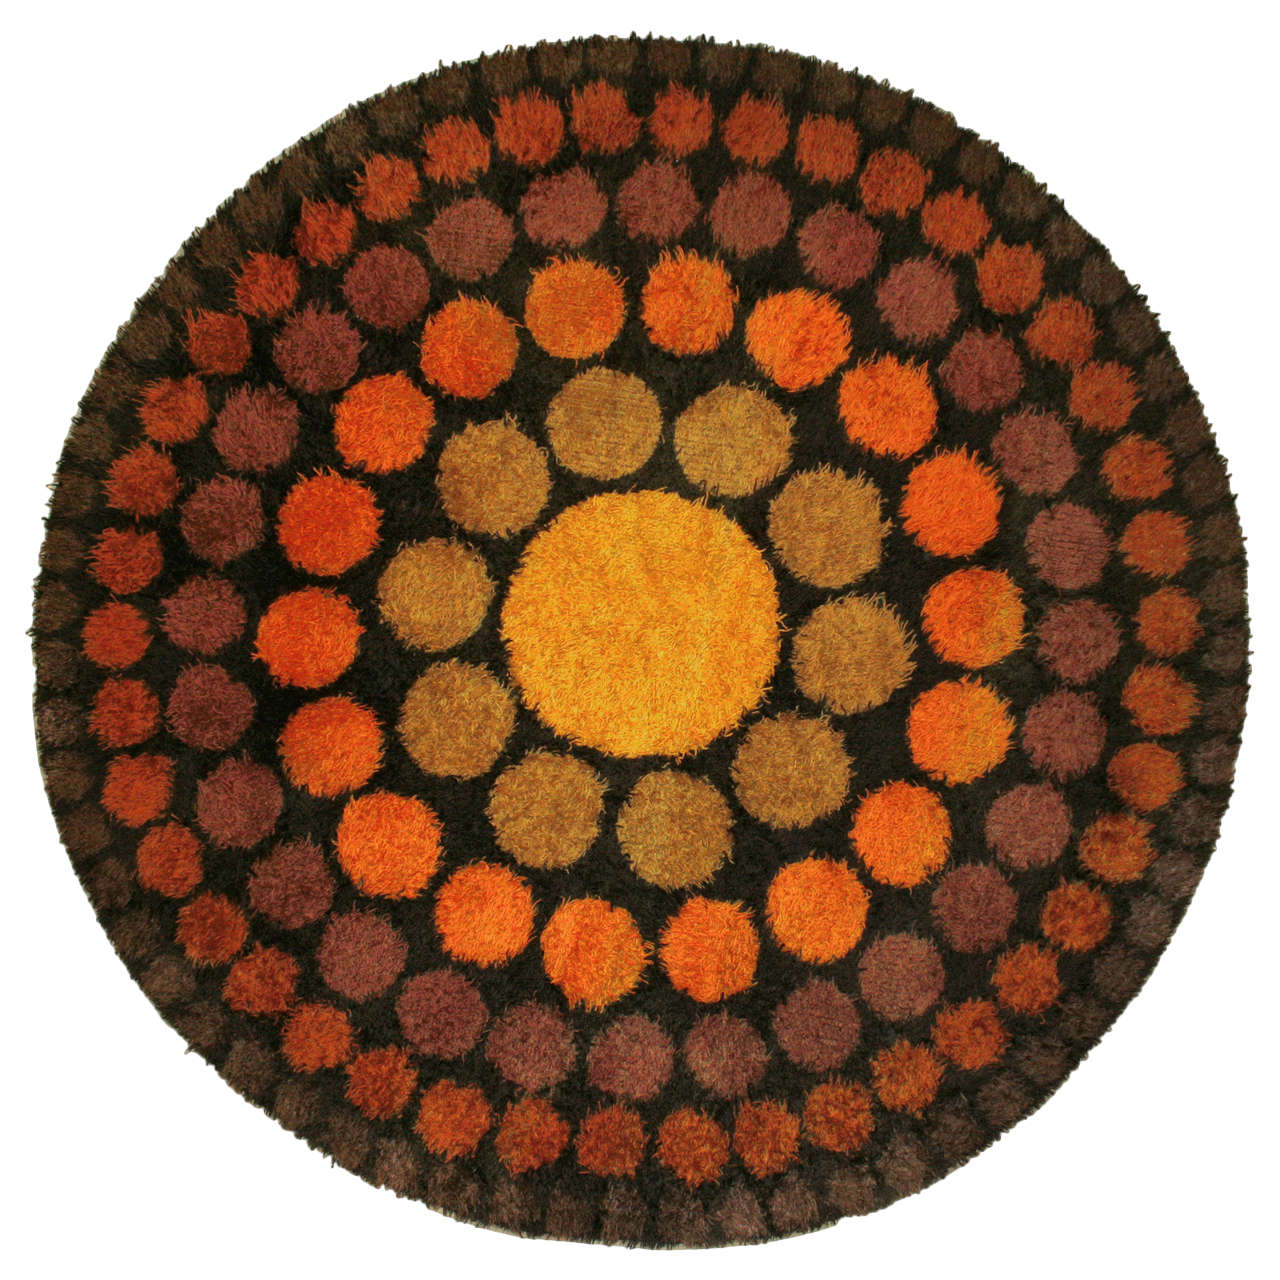 Roulette rug, 1965, offered by Alberto Levi Gallery